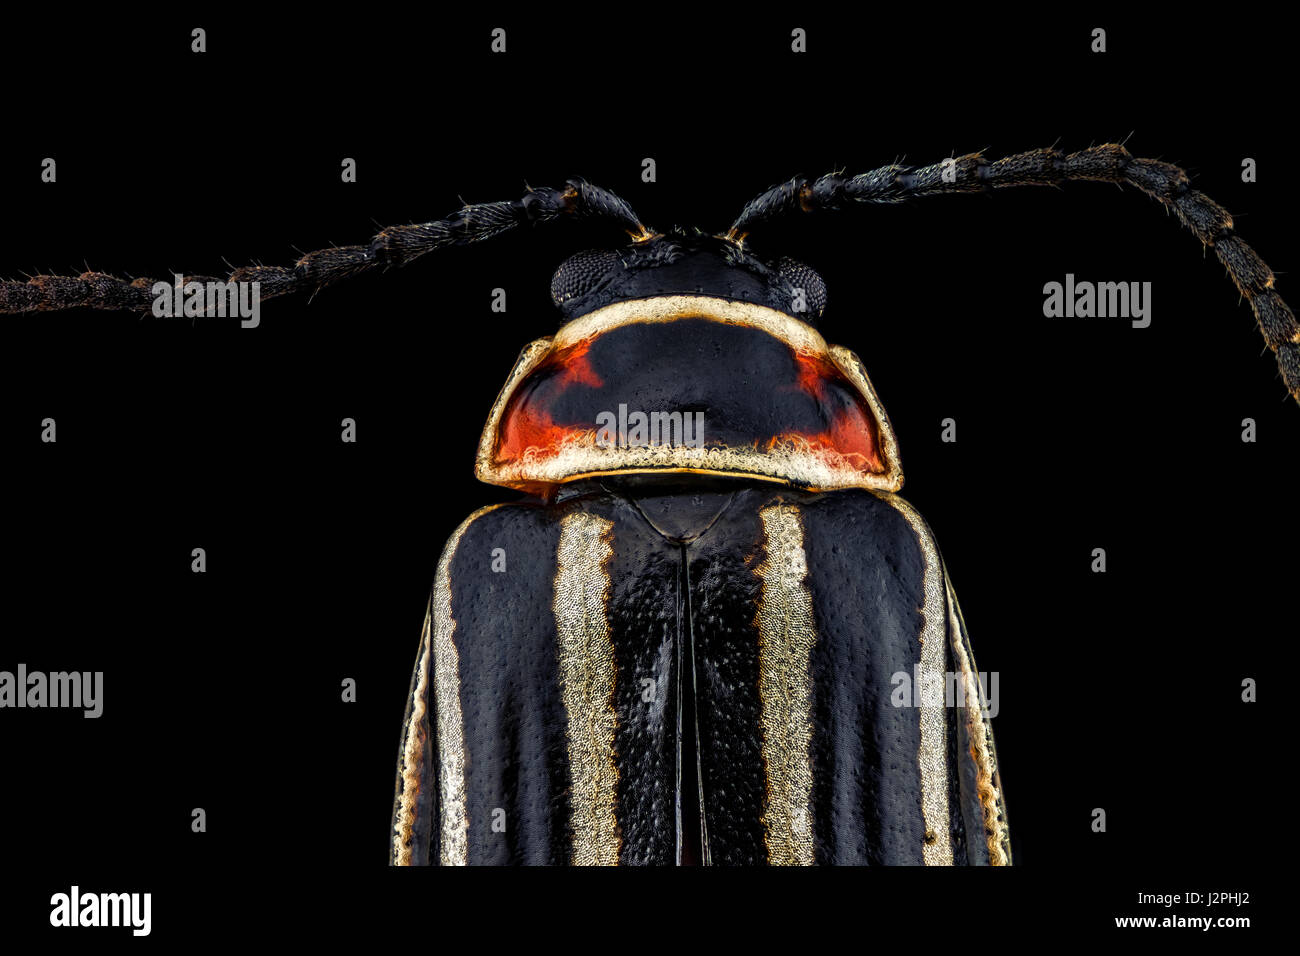 x4 magnification extreme macro of a Ten-Lined June Beetle. - Stock Image